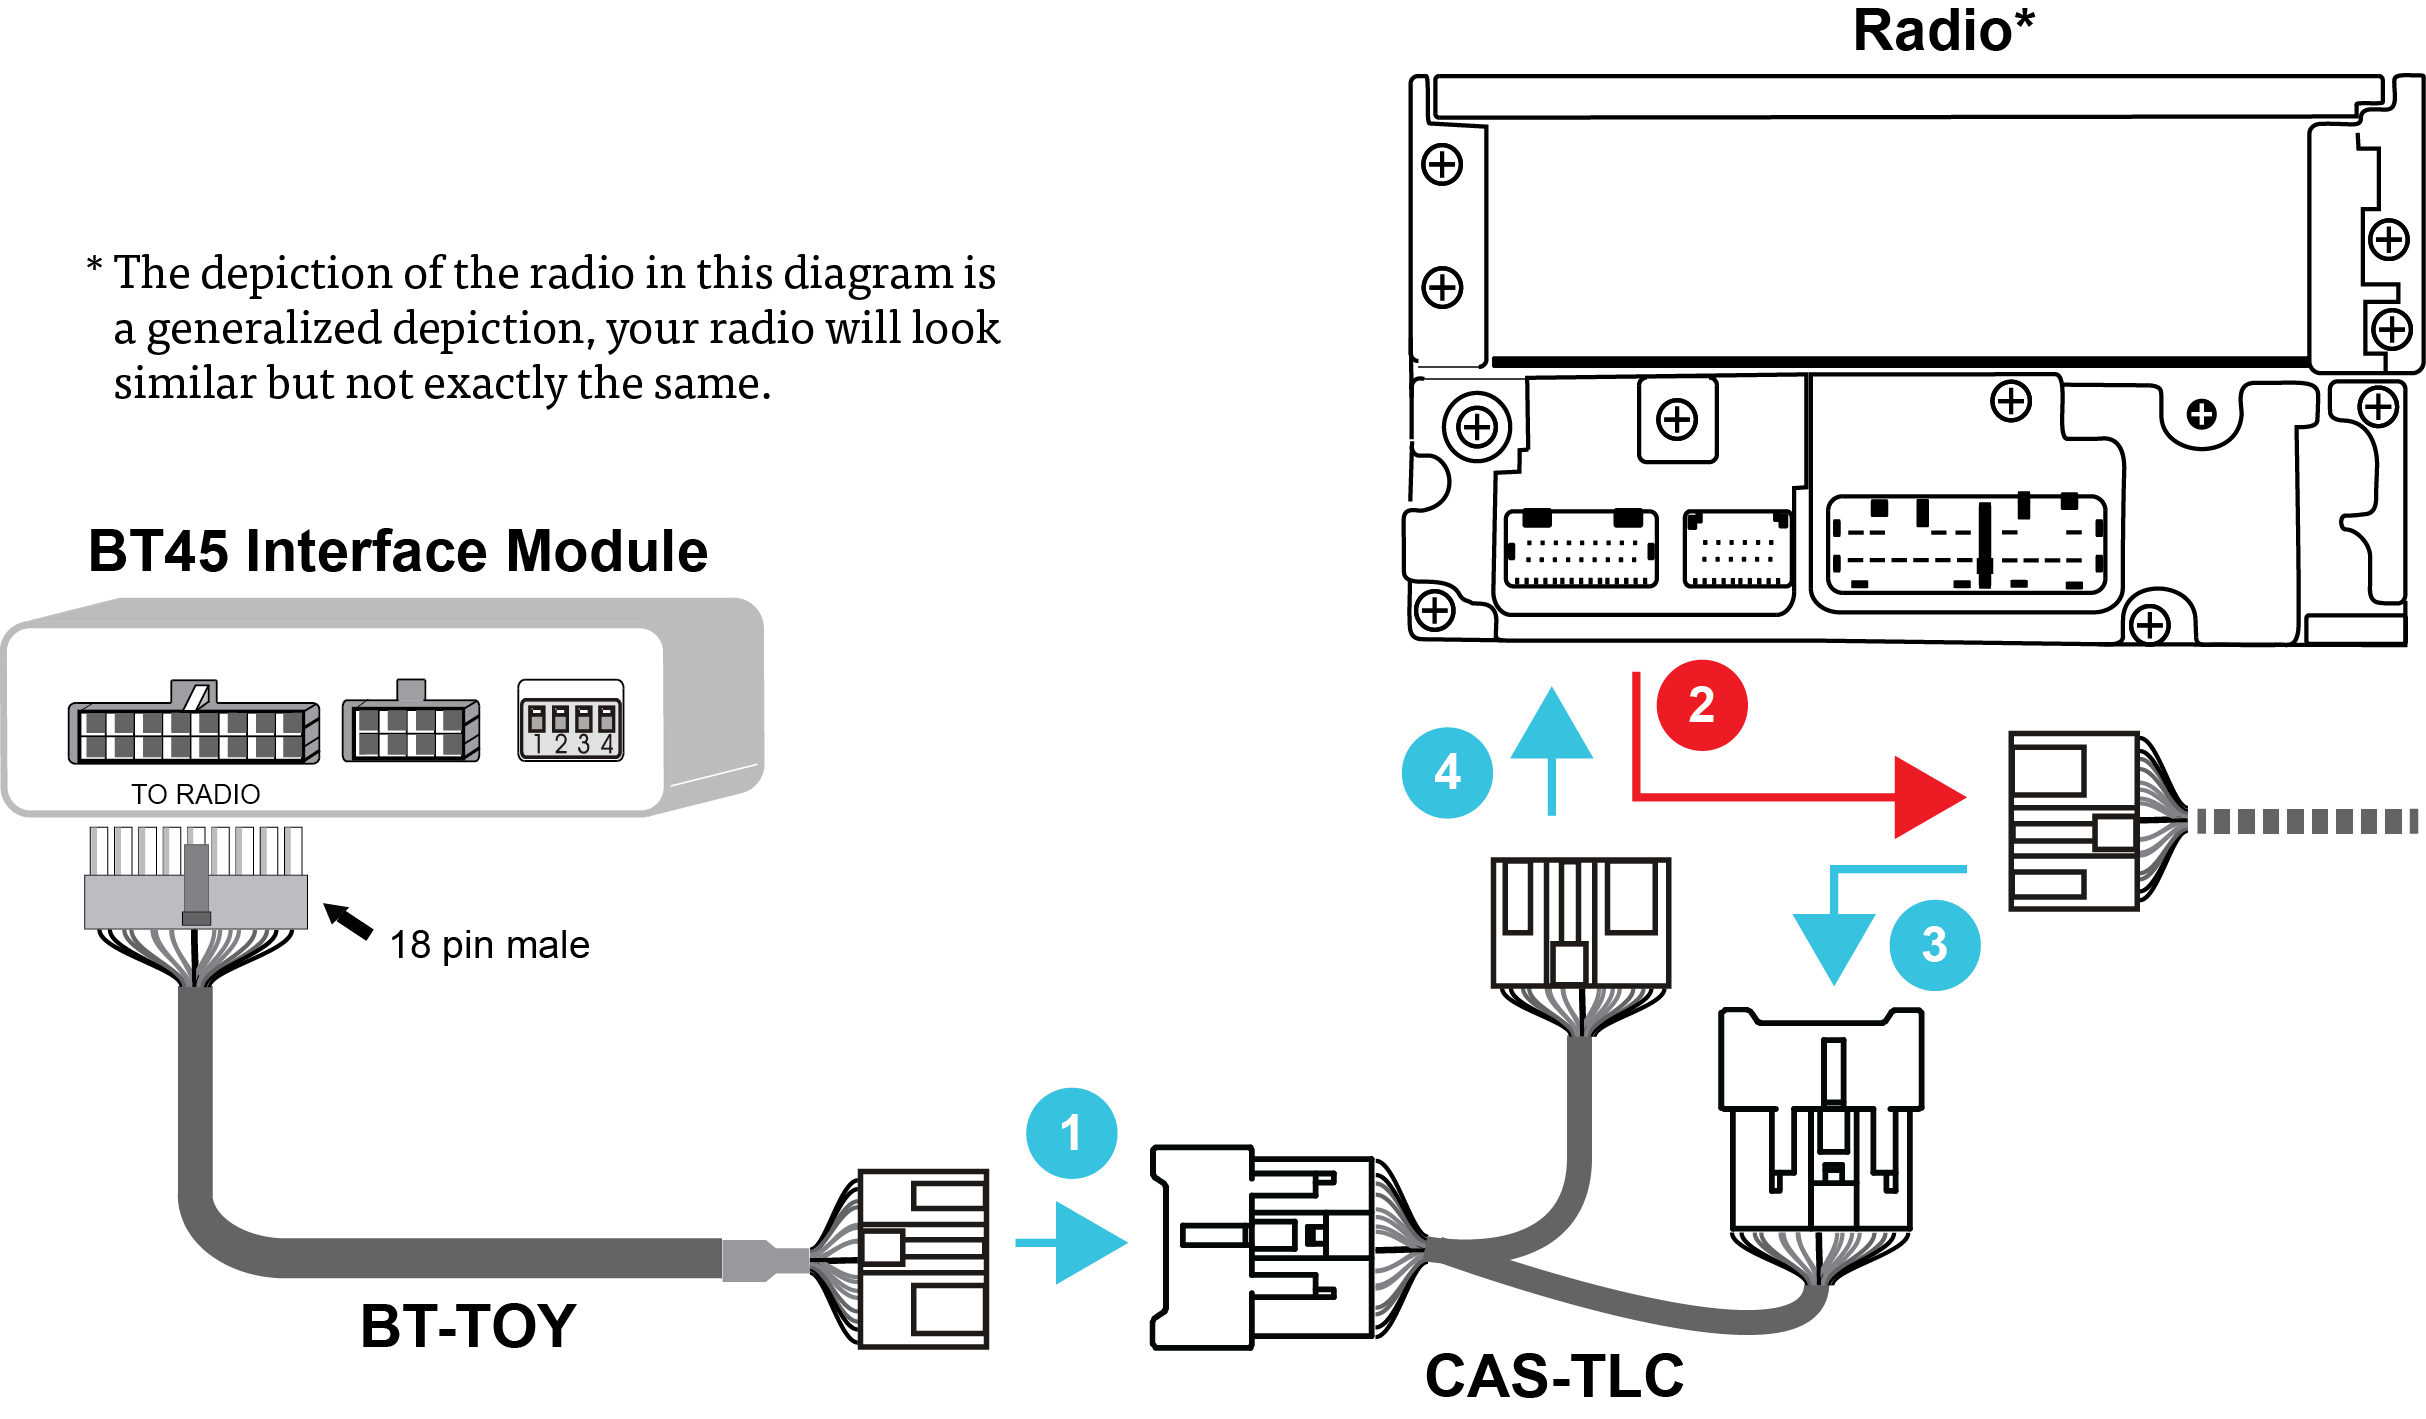 Comcast Cable Box Connection Diagram | Wiring Diagram Database